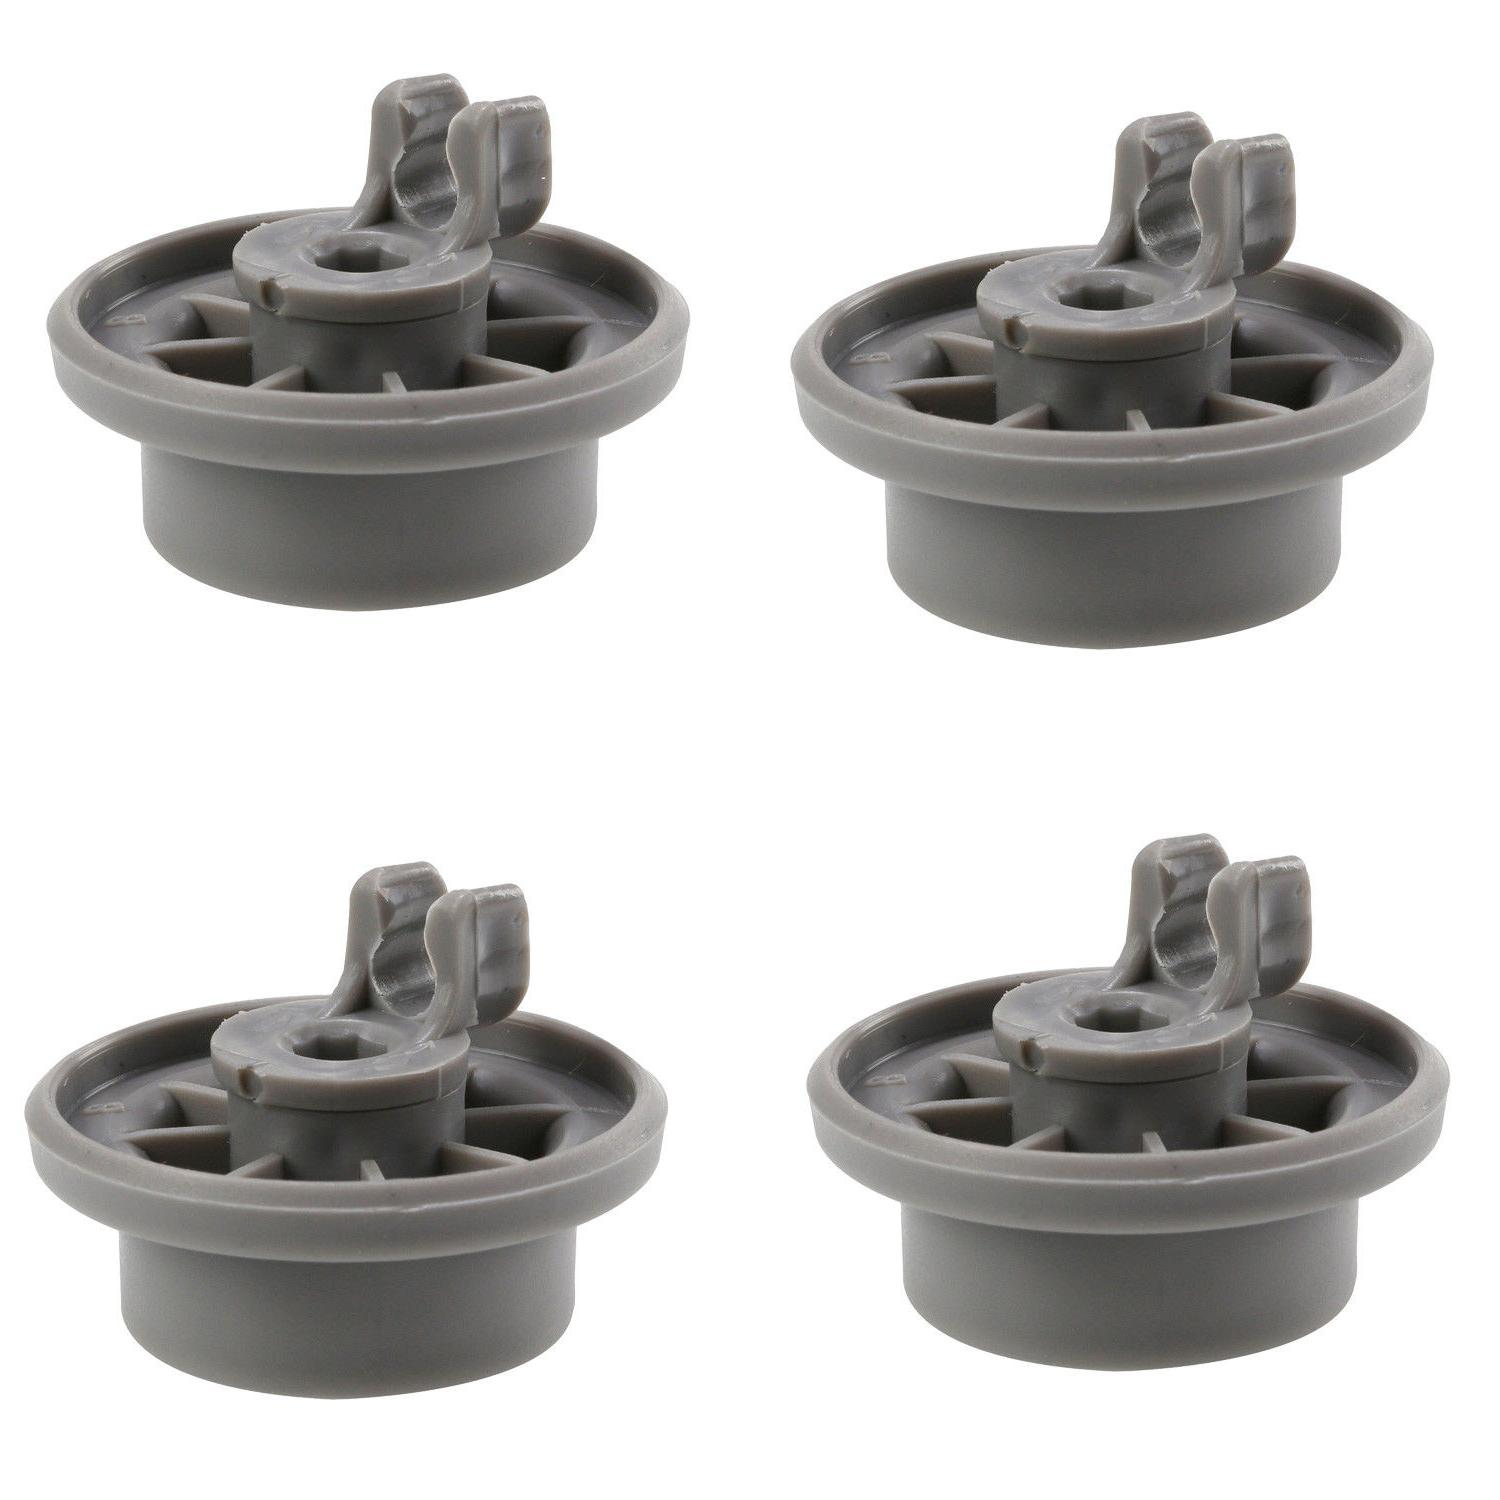 4X Dishwasher Lower Rack Wheel For Hardwick Jenn-Air Magic C